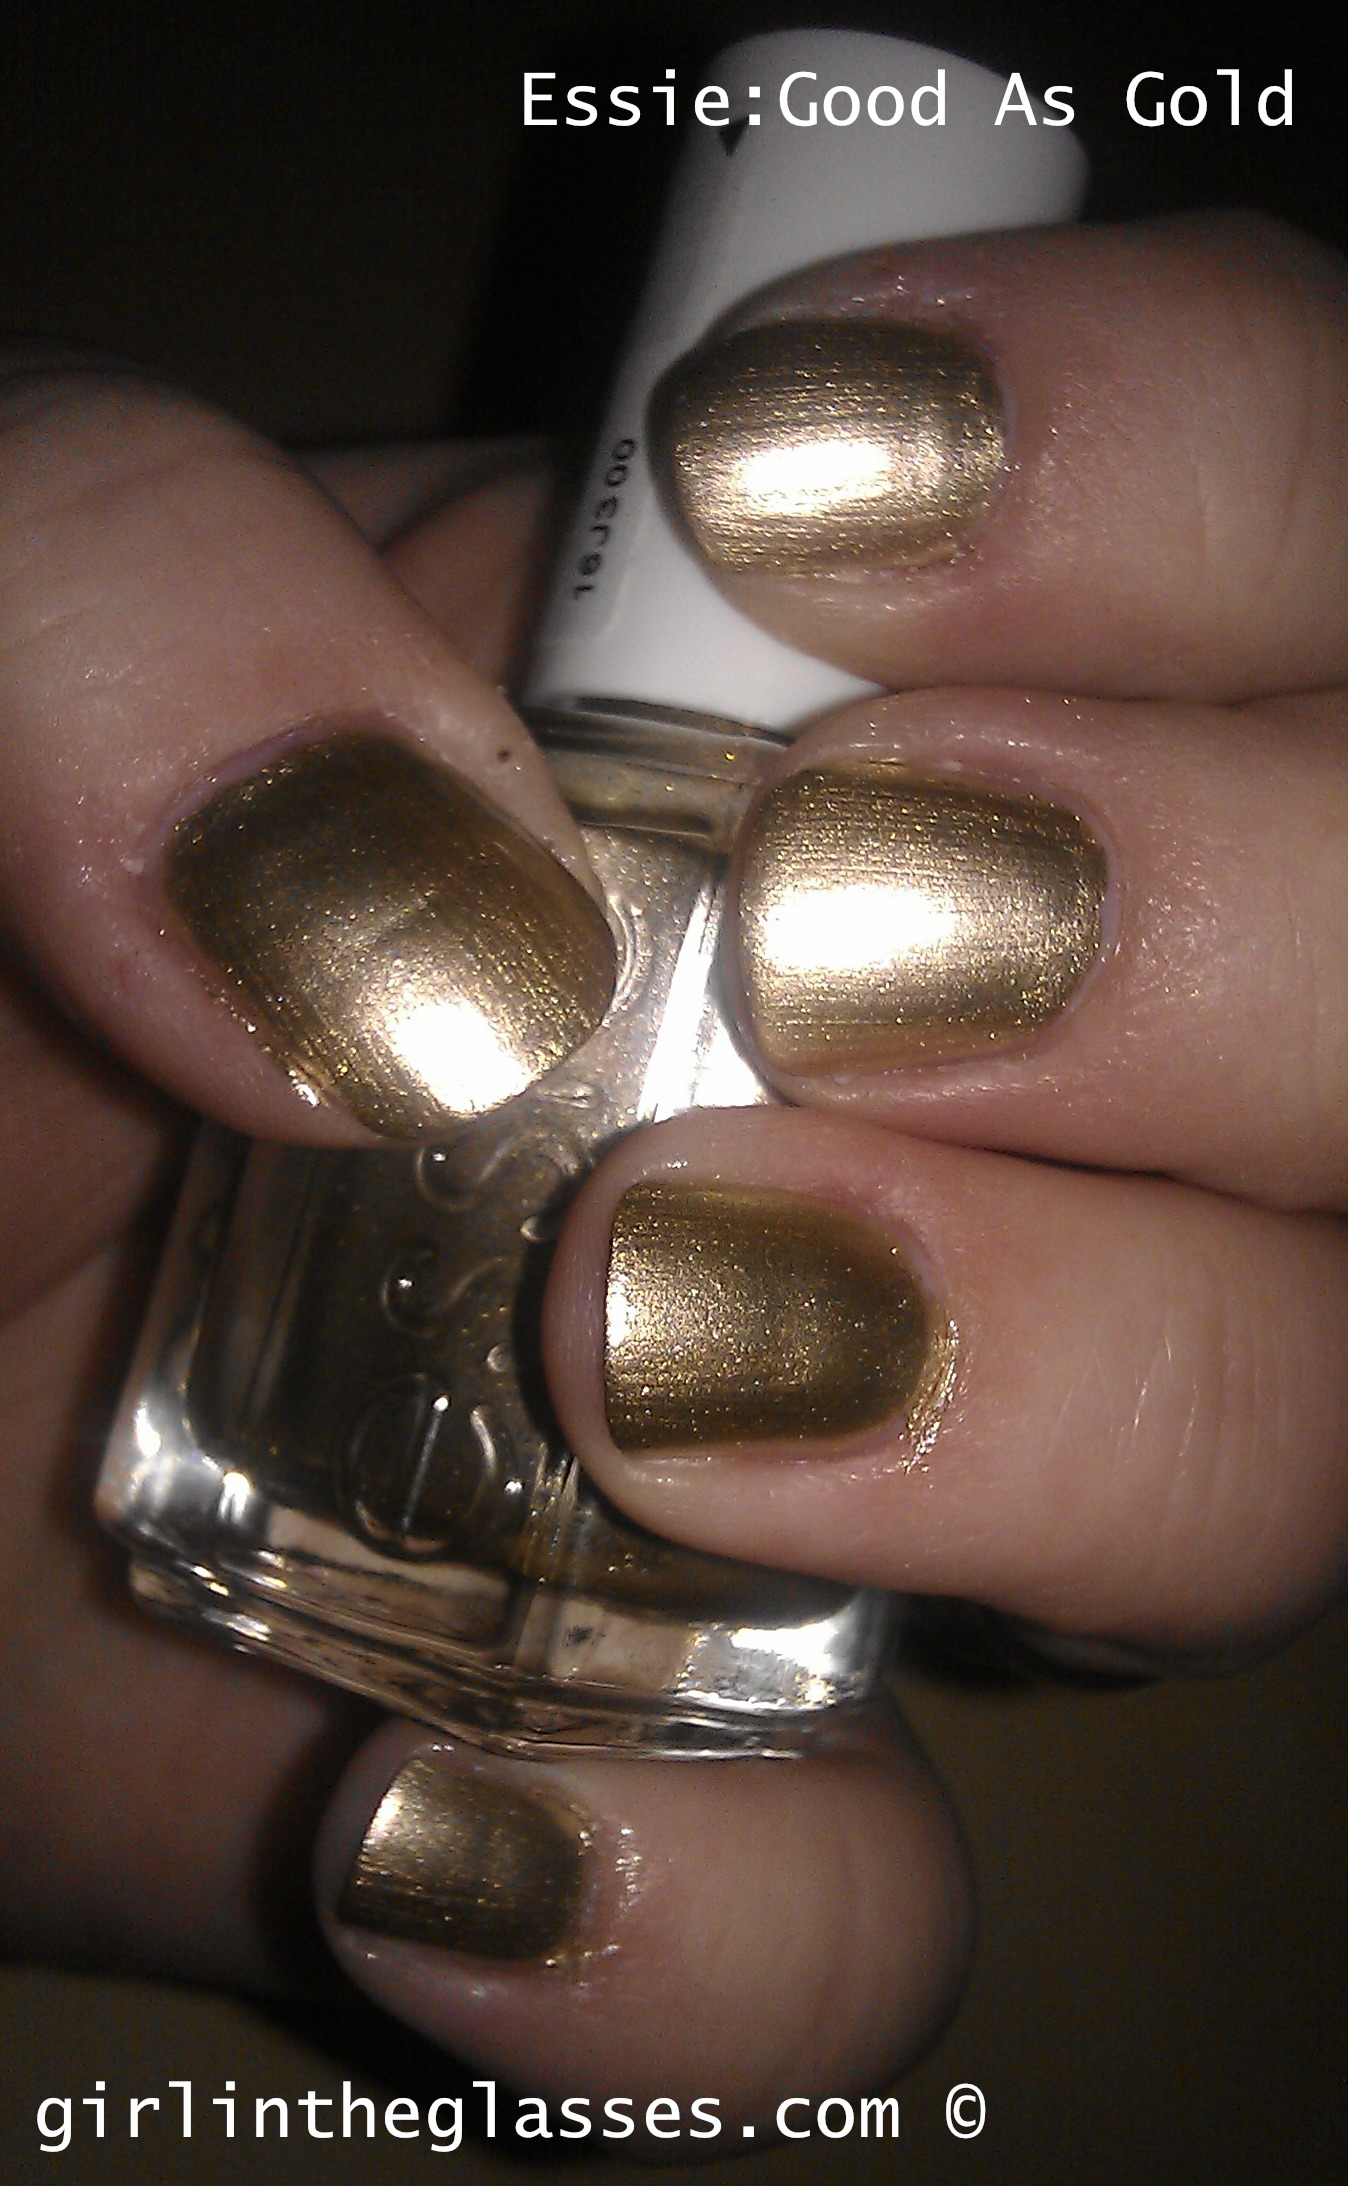 Essie: Good As Gold | girlintheglasses